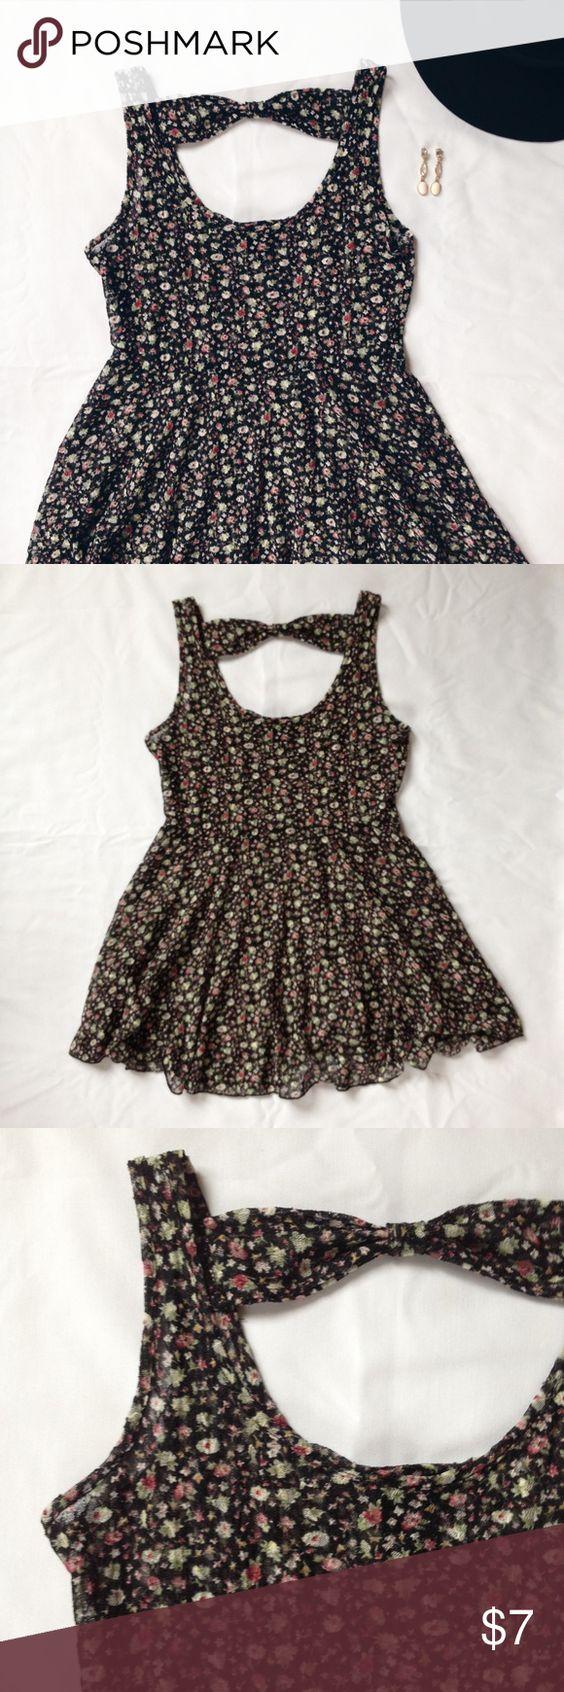 Vanity Black Floral Shirt Dress Super cute floral shirt dress! Gently used, lots of life left though. Scoop neck, lower back with bow detail. Sheer material, would need to wear an under shirt. Flares out around waist. Not long enough to wear as a dress, but would look super cute with leggings or shorts. Vanity Tops Tank Tops